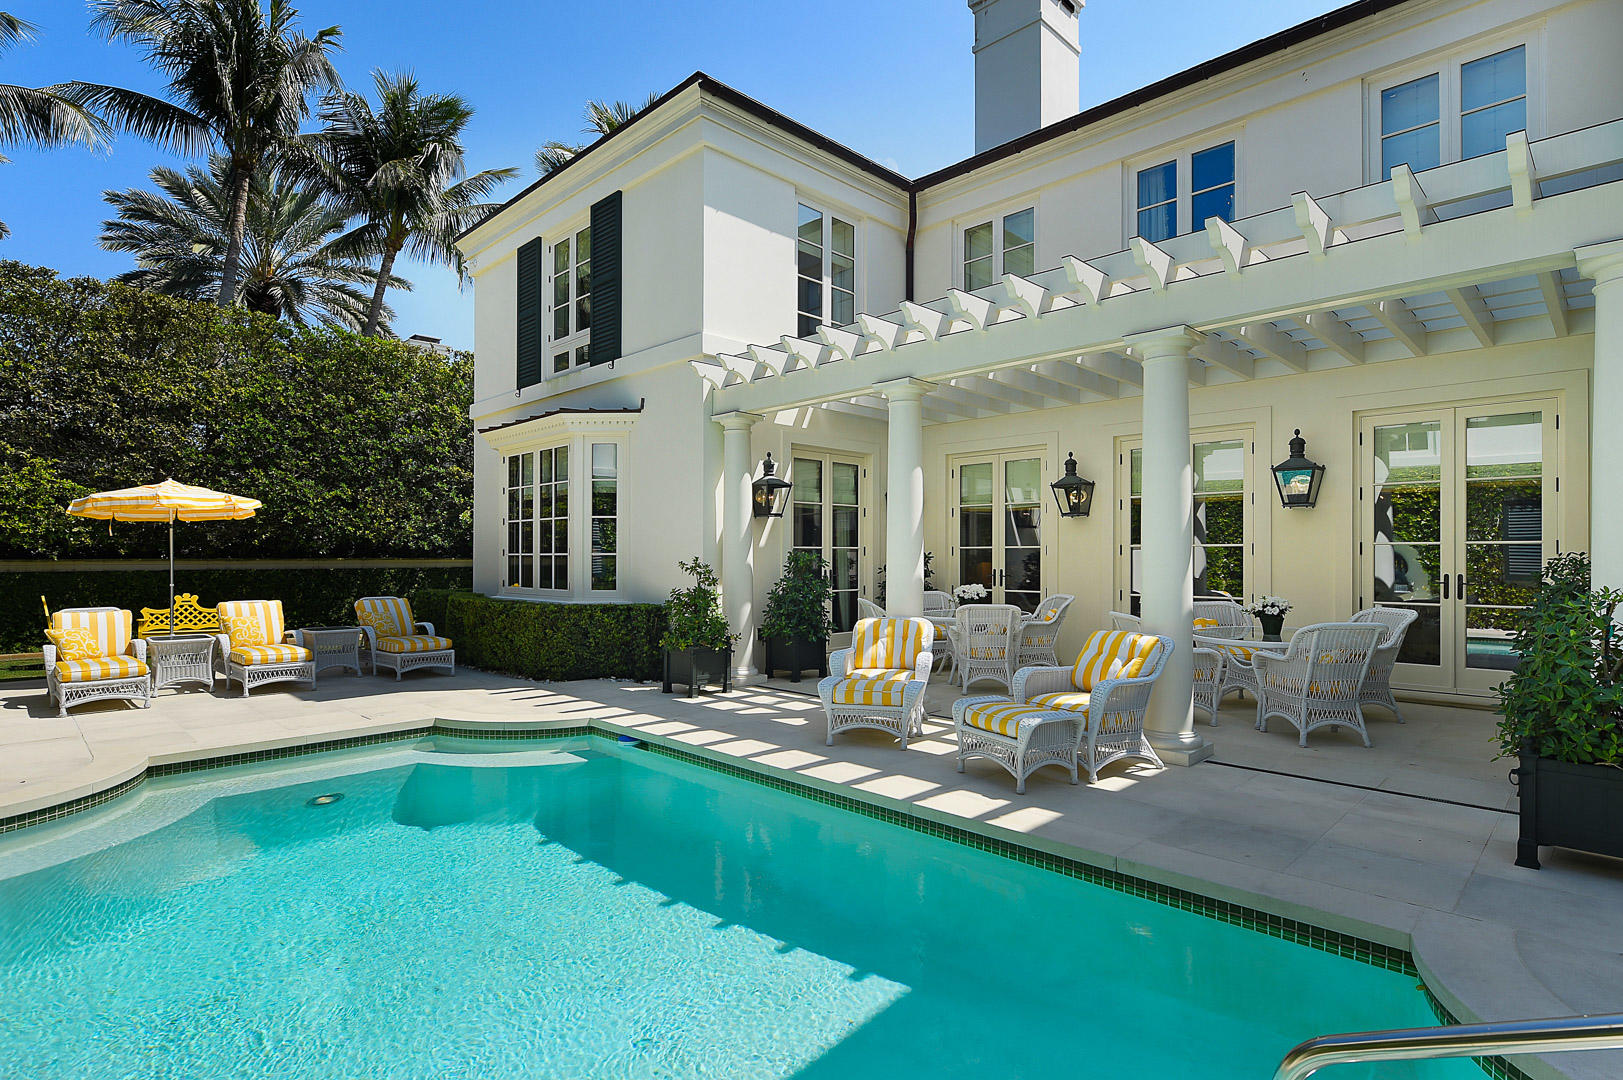 Spectacular 5BR/6.2BA home located in Palm Beach's acclaimed Estate Section, beautifully designed by award winning architect Mark P. Finlay. Features gorgeous antique limestone and antique hickory hand-scraped hardwood flooring, perfectly scaled rooms, and exceptional finishes throughout. Stunning paneled library with fireplace and full bath, first floor VIP guest suite, formal dining room, and first and second floor laundry rooms. Gourmet eat-in Chef's kitchen with Wolf and Subzero appliances leads to breakfast room and light-filled family room. Elegant formal living room with fireplace opens to pergola covered loggia and tranquil pool area. Additional highlights include soaring 10'+ ceilings on the first floor and 9' ceilings on the second, 1BR/1BA guest apartment, elevator, and full-house generator. Ample parking with circular drive and large driveway leading to 2 car garage.